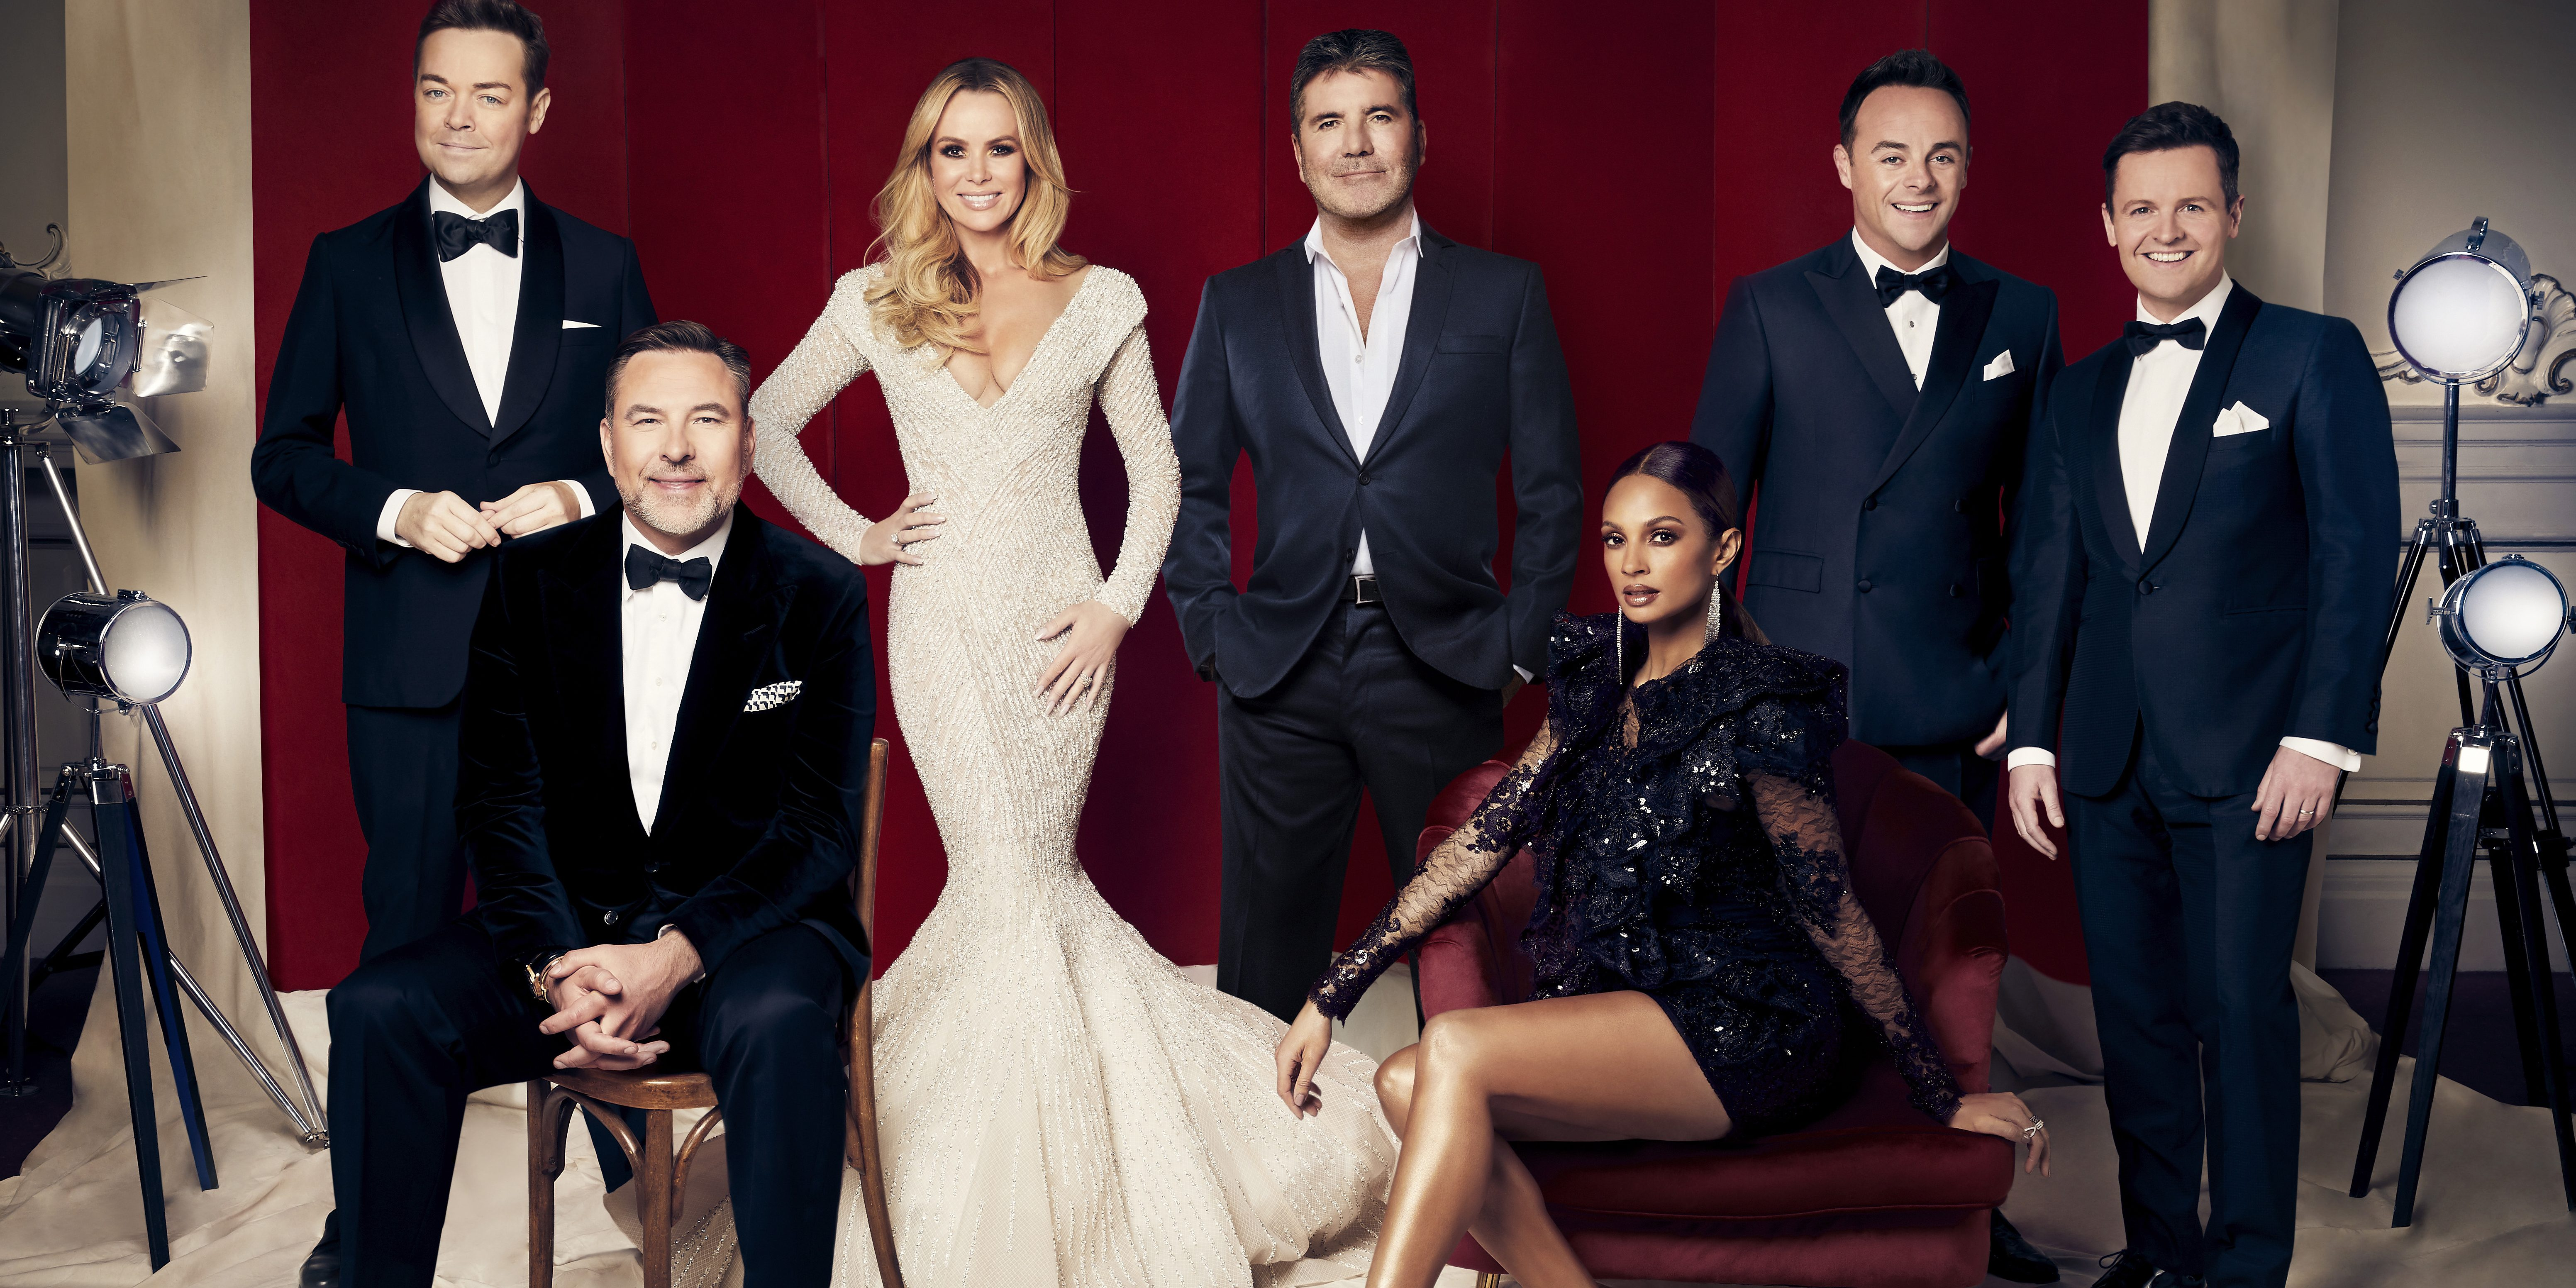 Alesha Dixon so glad to have Ant McPartlin back in the Britain's Got Talent family